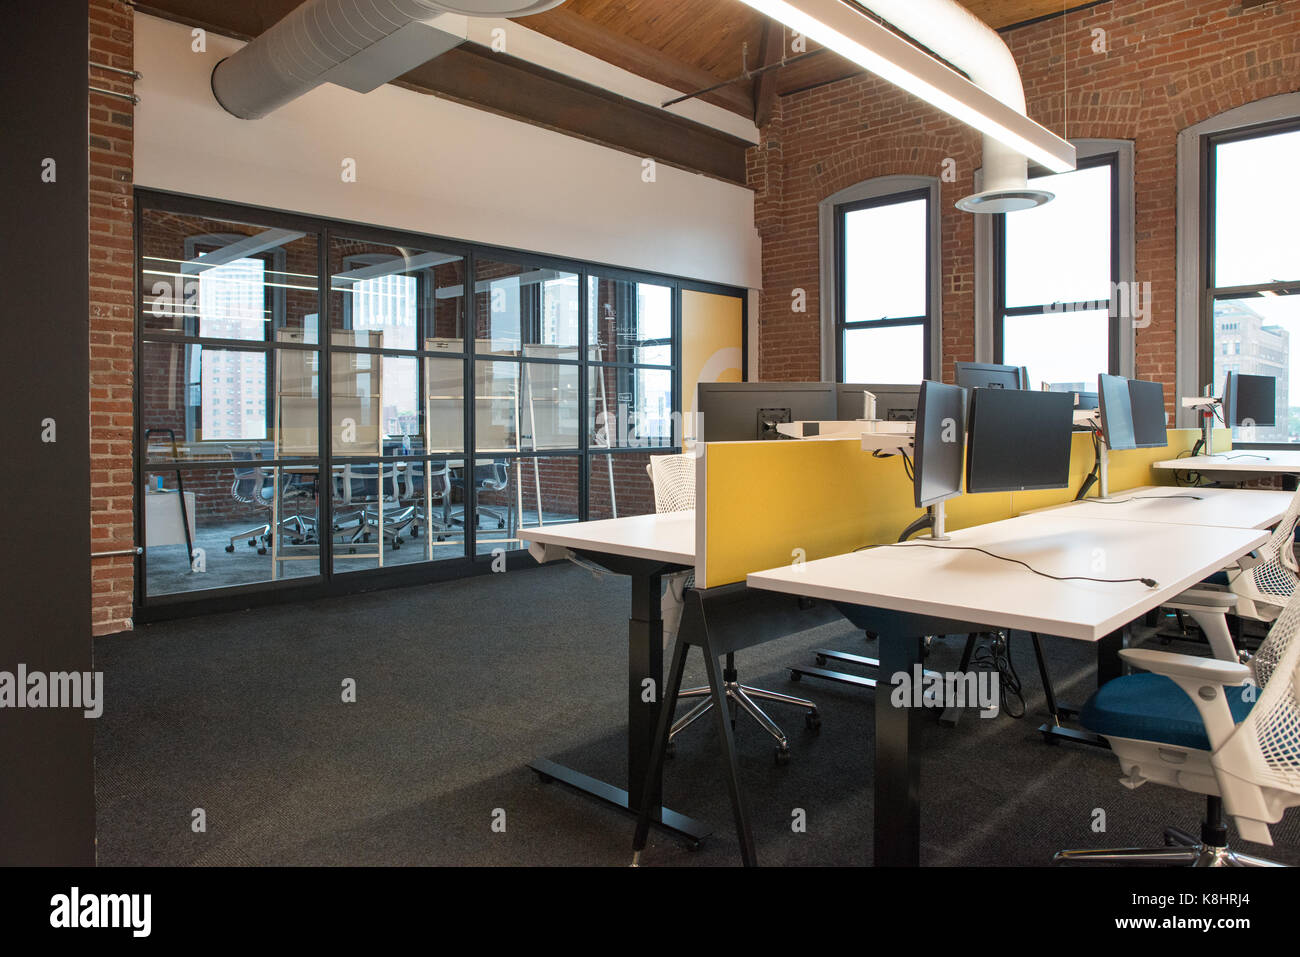 trendy office. Brilliant Trendy Trendy Modern Open Concept Loft Office Space With Big Windows Natural  Light And A Layout To Encourage Collaboration Creativity Innovation Intended Office